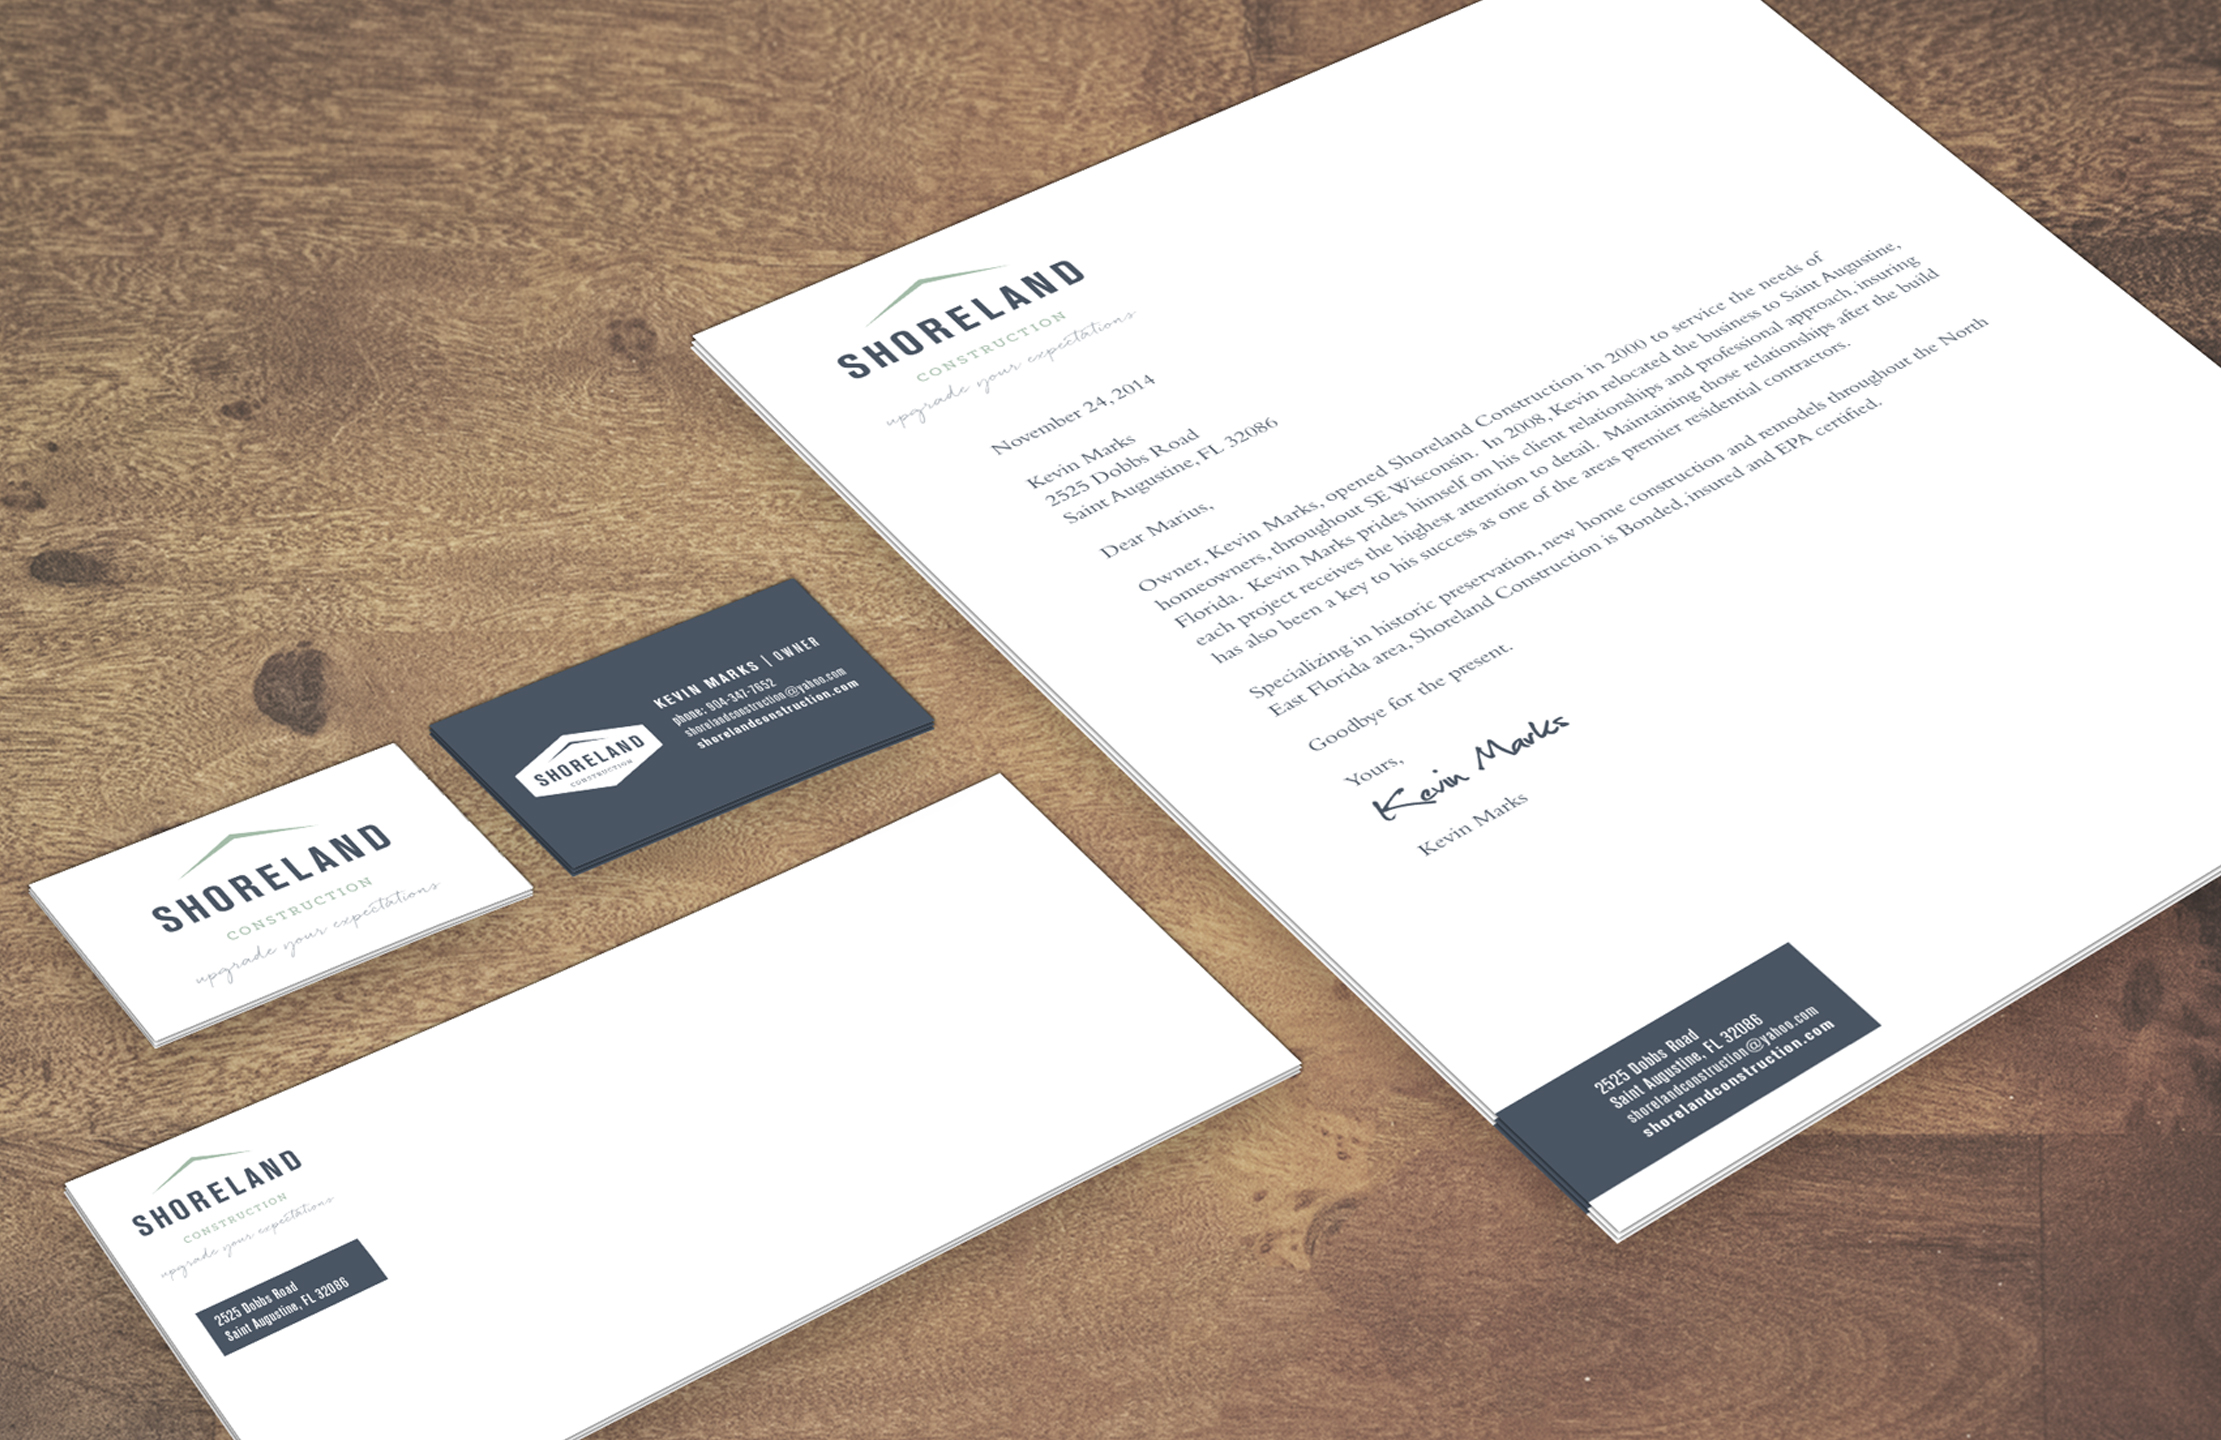 Shoreland Construction Branding Stationery by Just Make Things